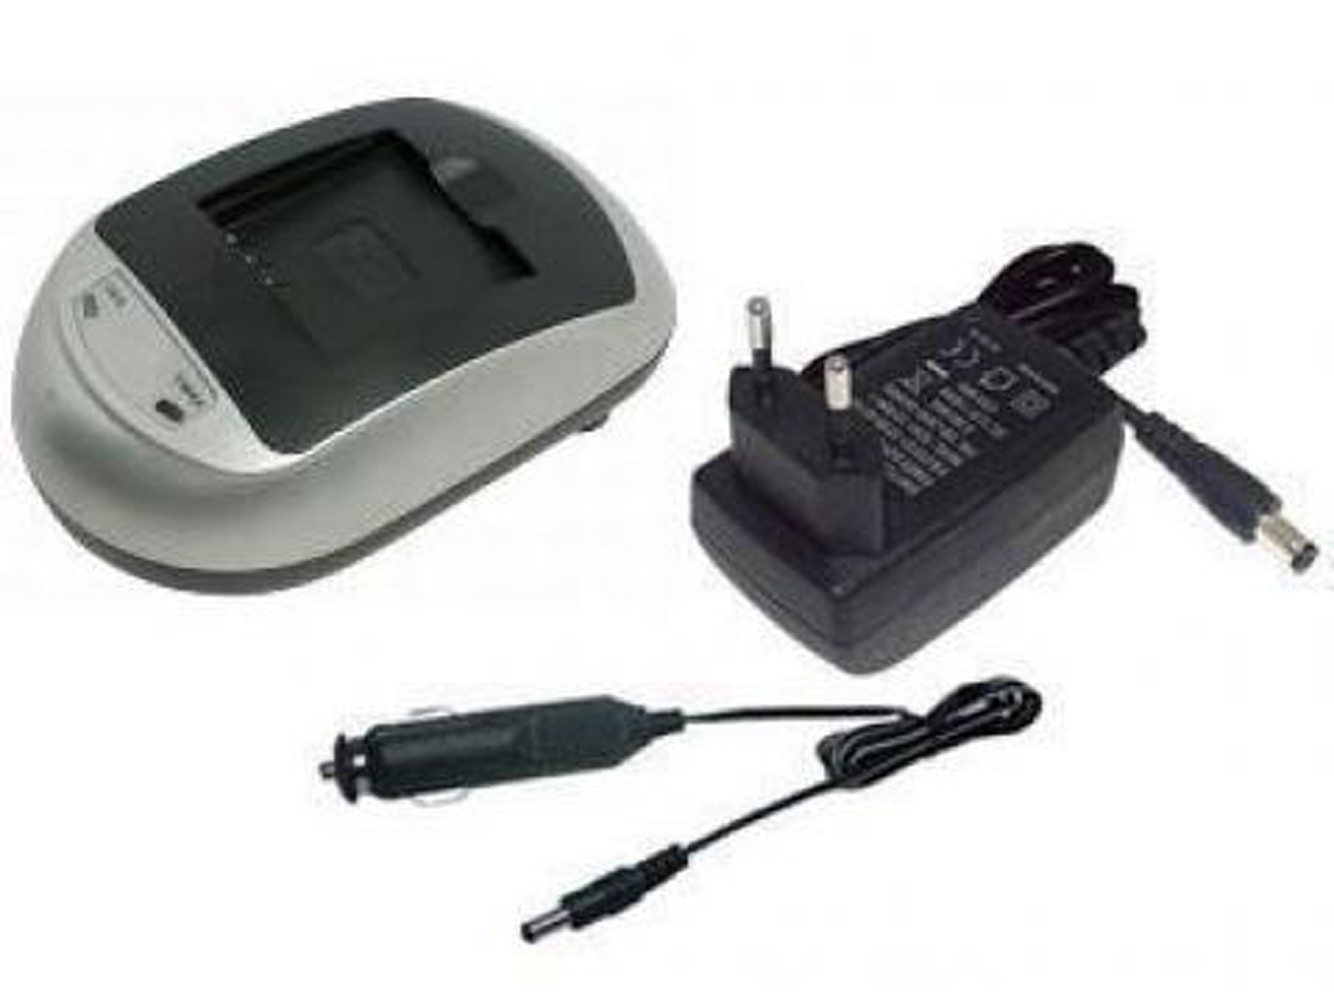 Battery Charger for SONY InfoLithium E Series